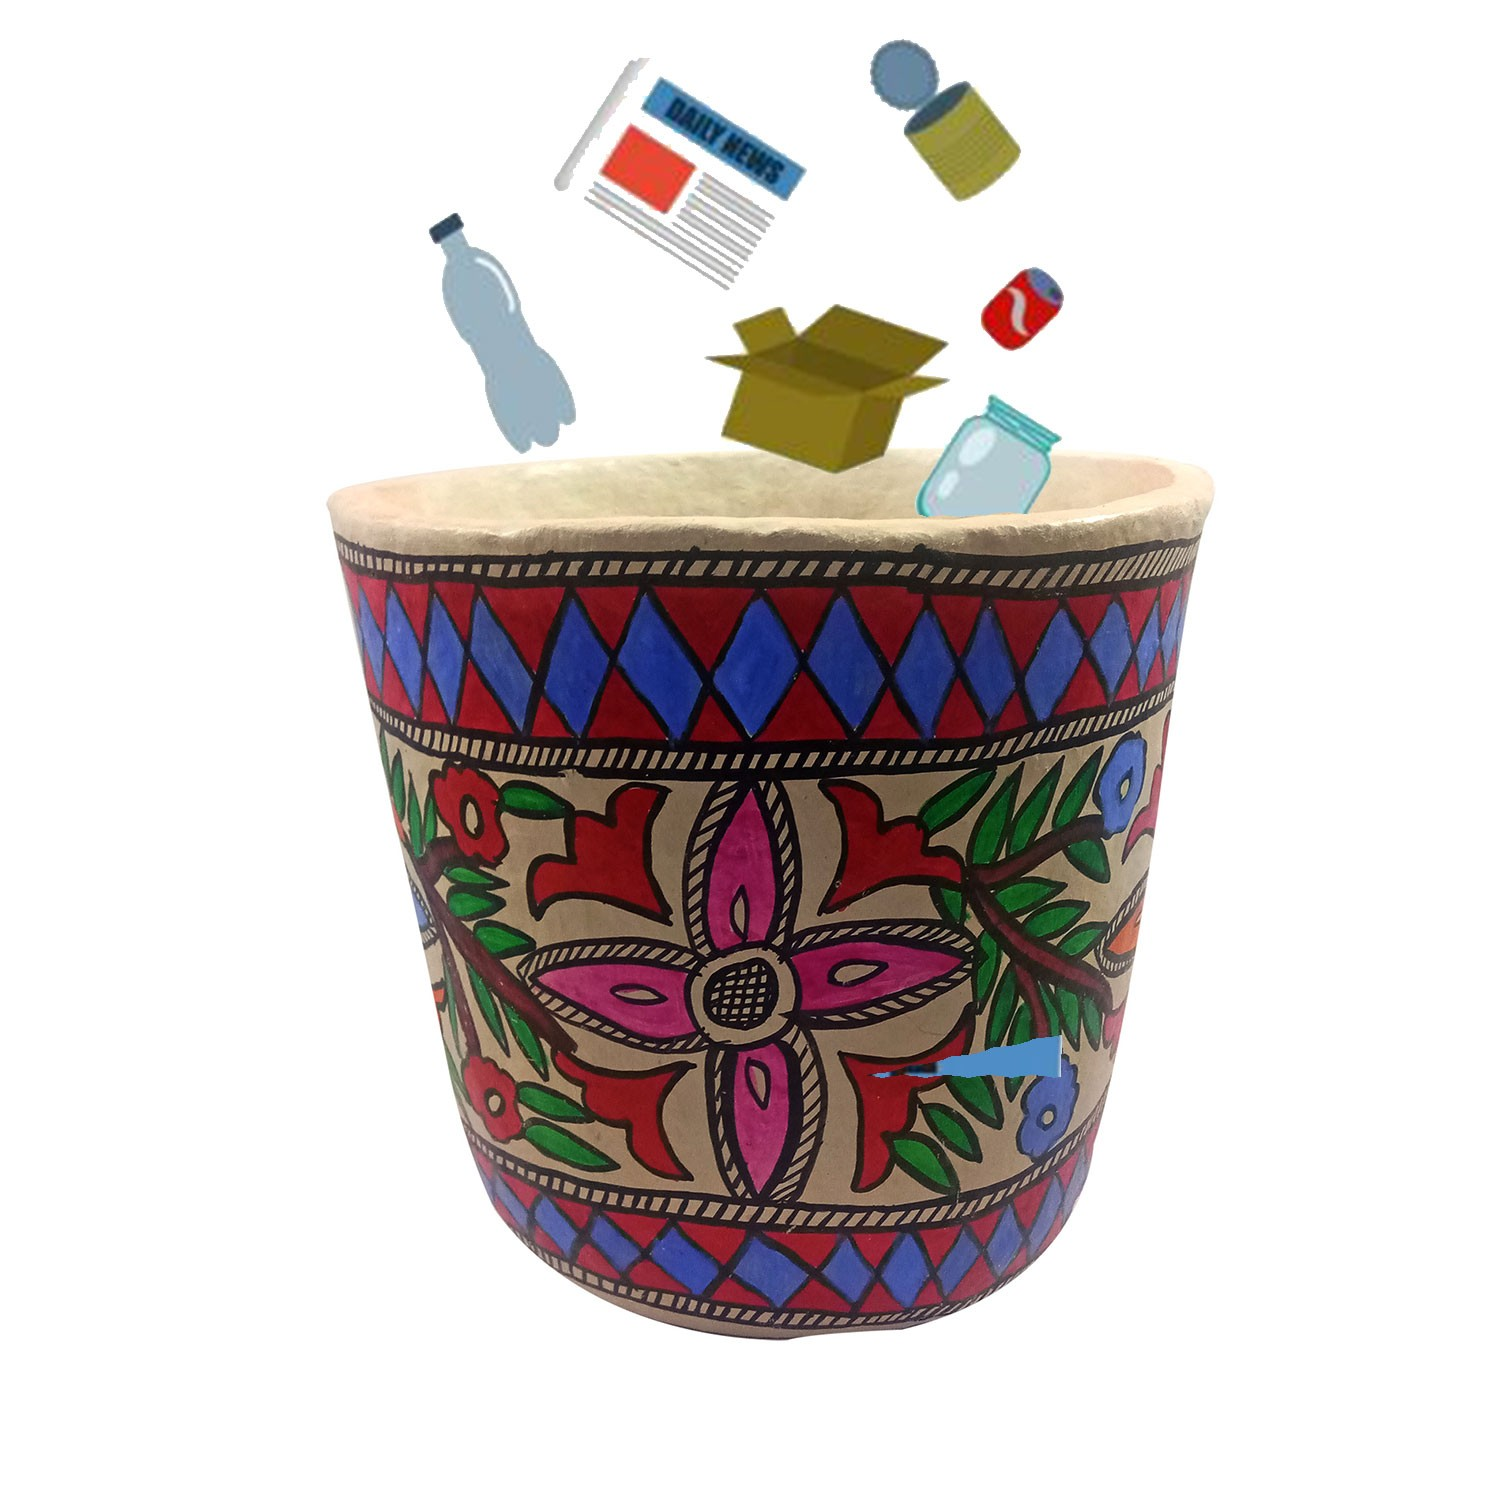 Handmade exclusive paper mache  Multicolor Dustbin With  Beautiful Madhubani Painting By Rural Artisan.